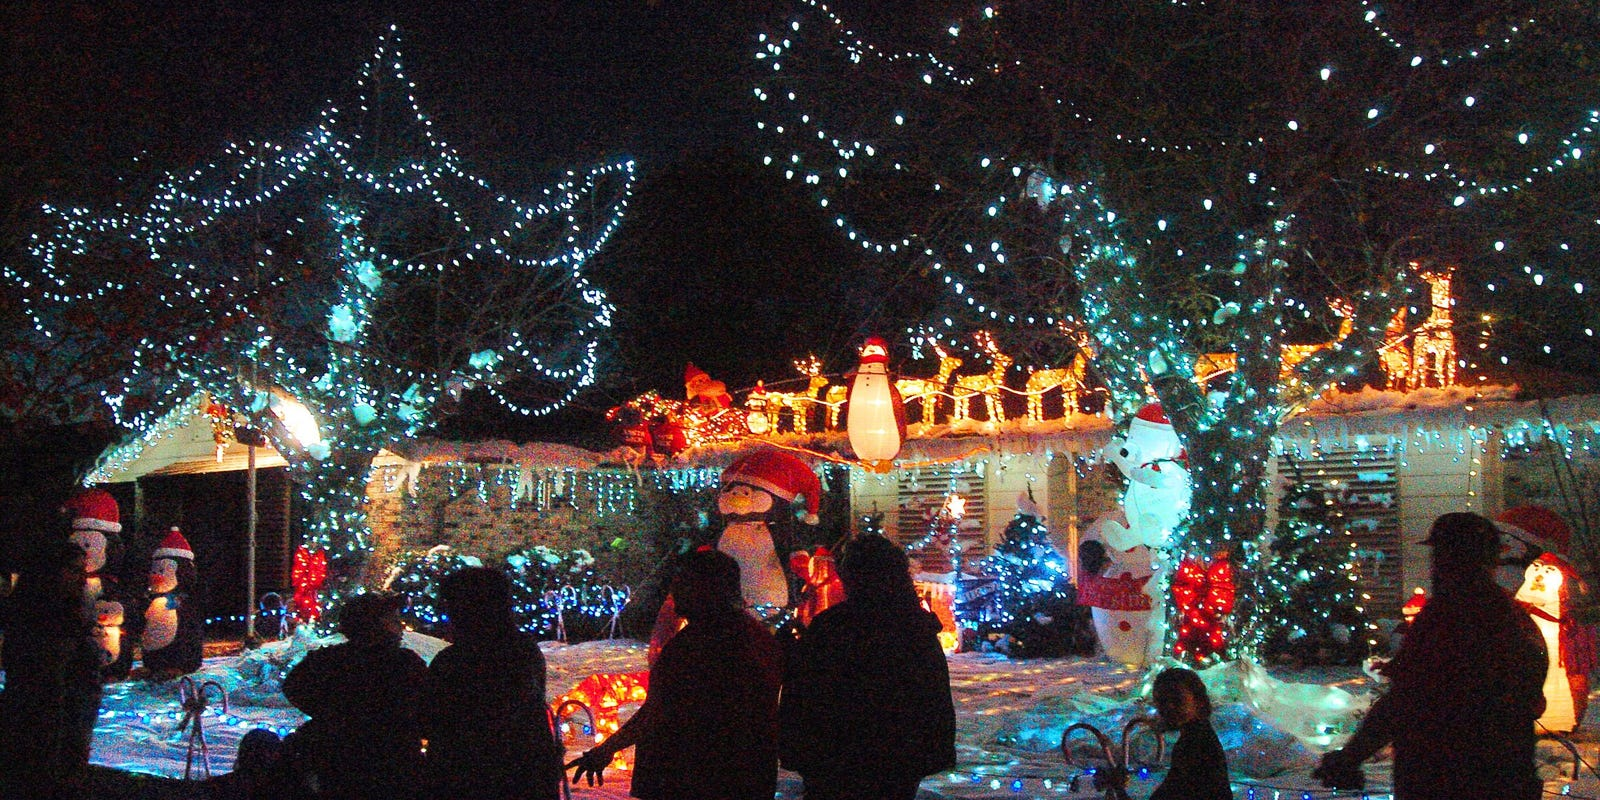 Best places to see Christmas lights in Corpus Christi